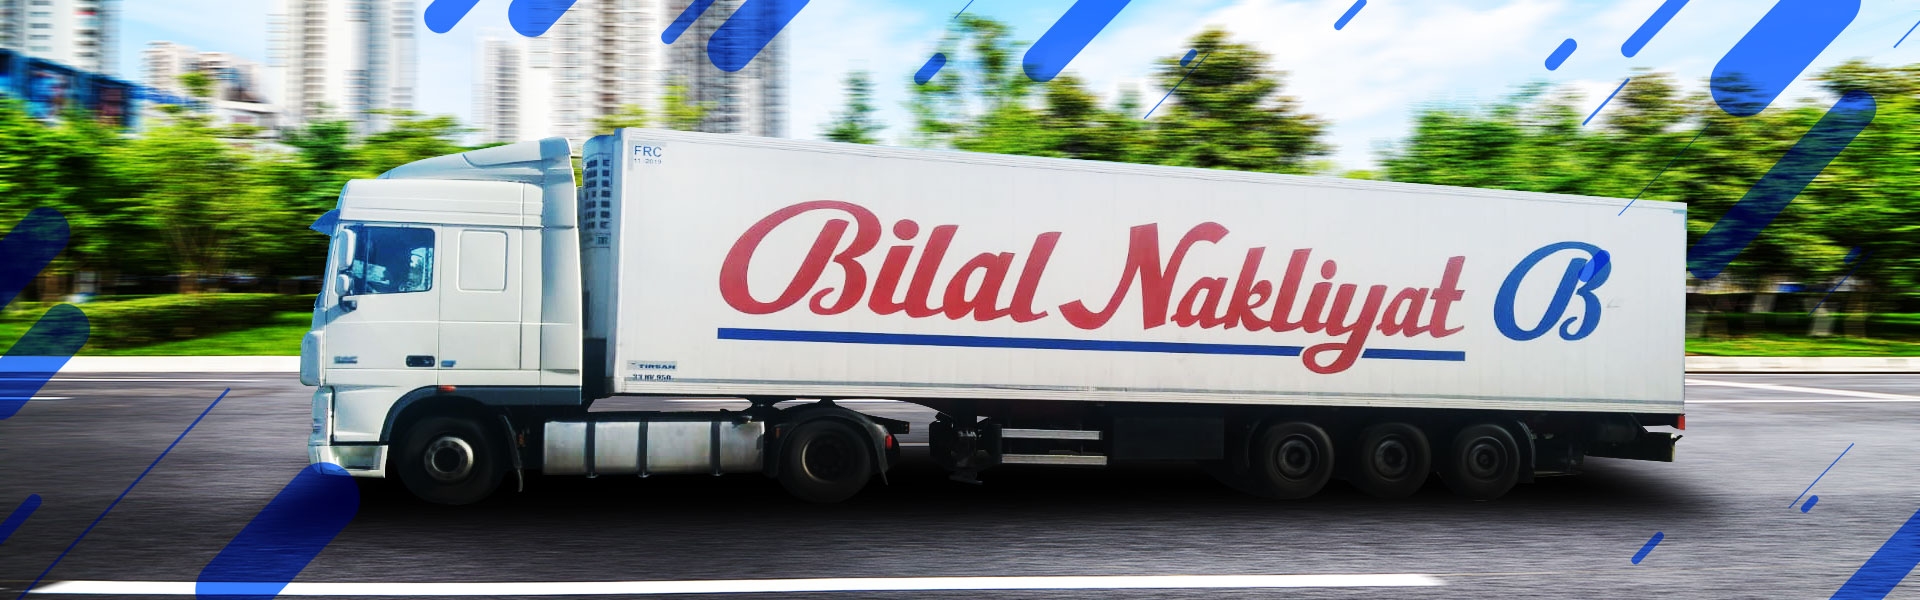 Bilal Nakliyat | Express Transportation Services